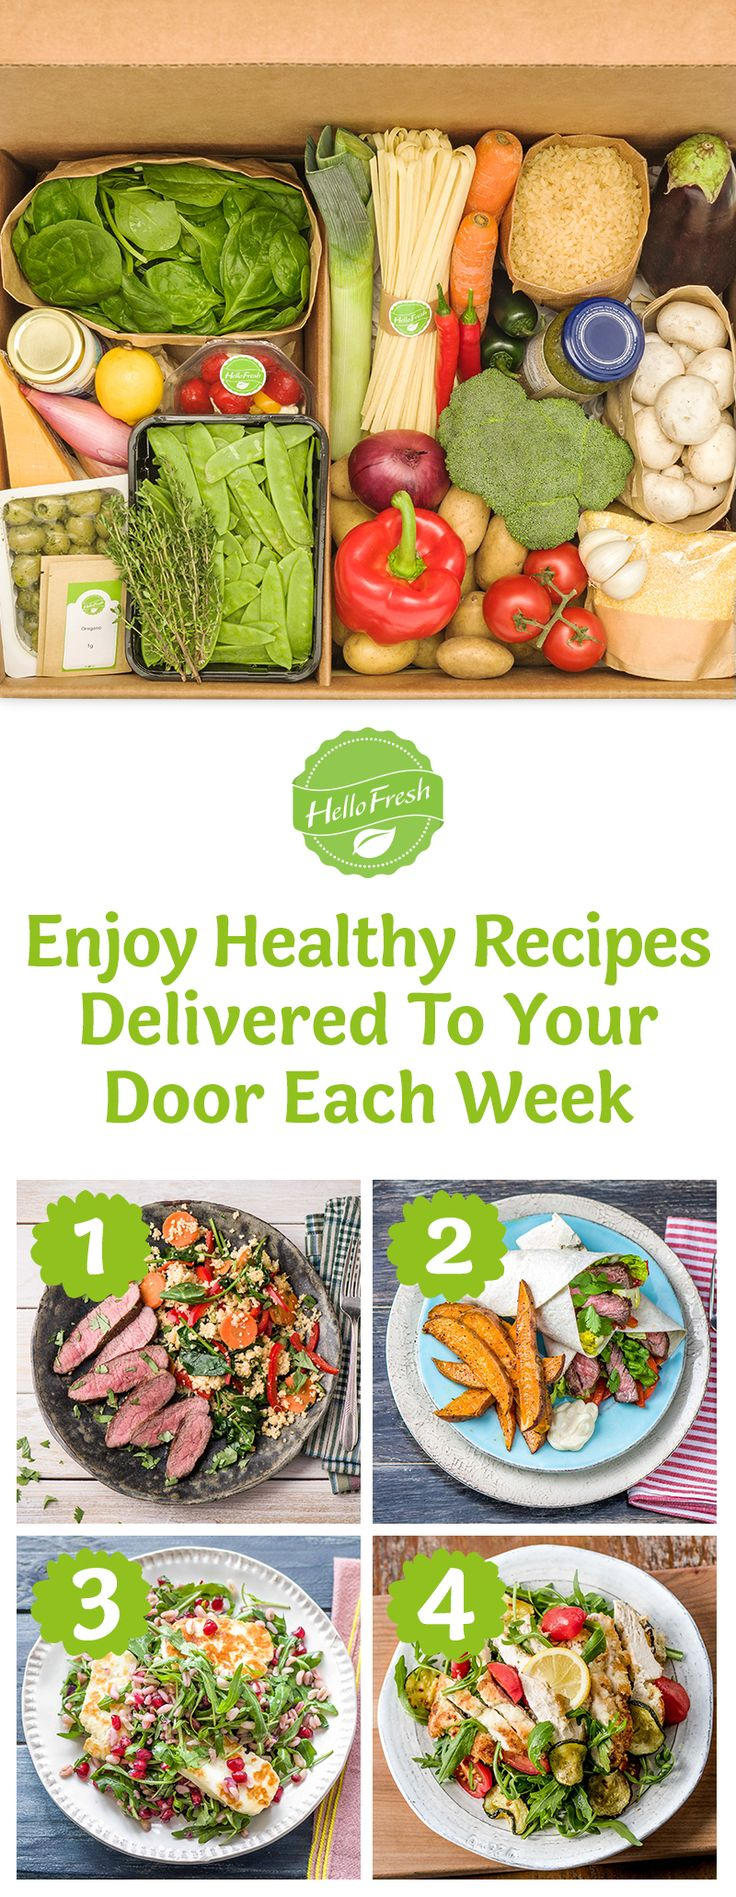 1st step to eating and feeling healthier is as easy as your 1st HelloFresh Box! ➜ Use code HELLOPIN35 at checkout to save $35 on